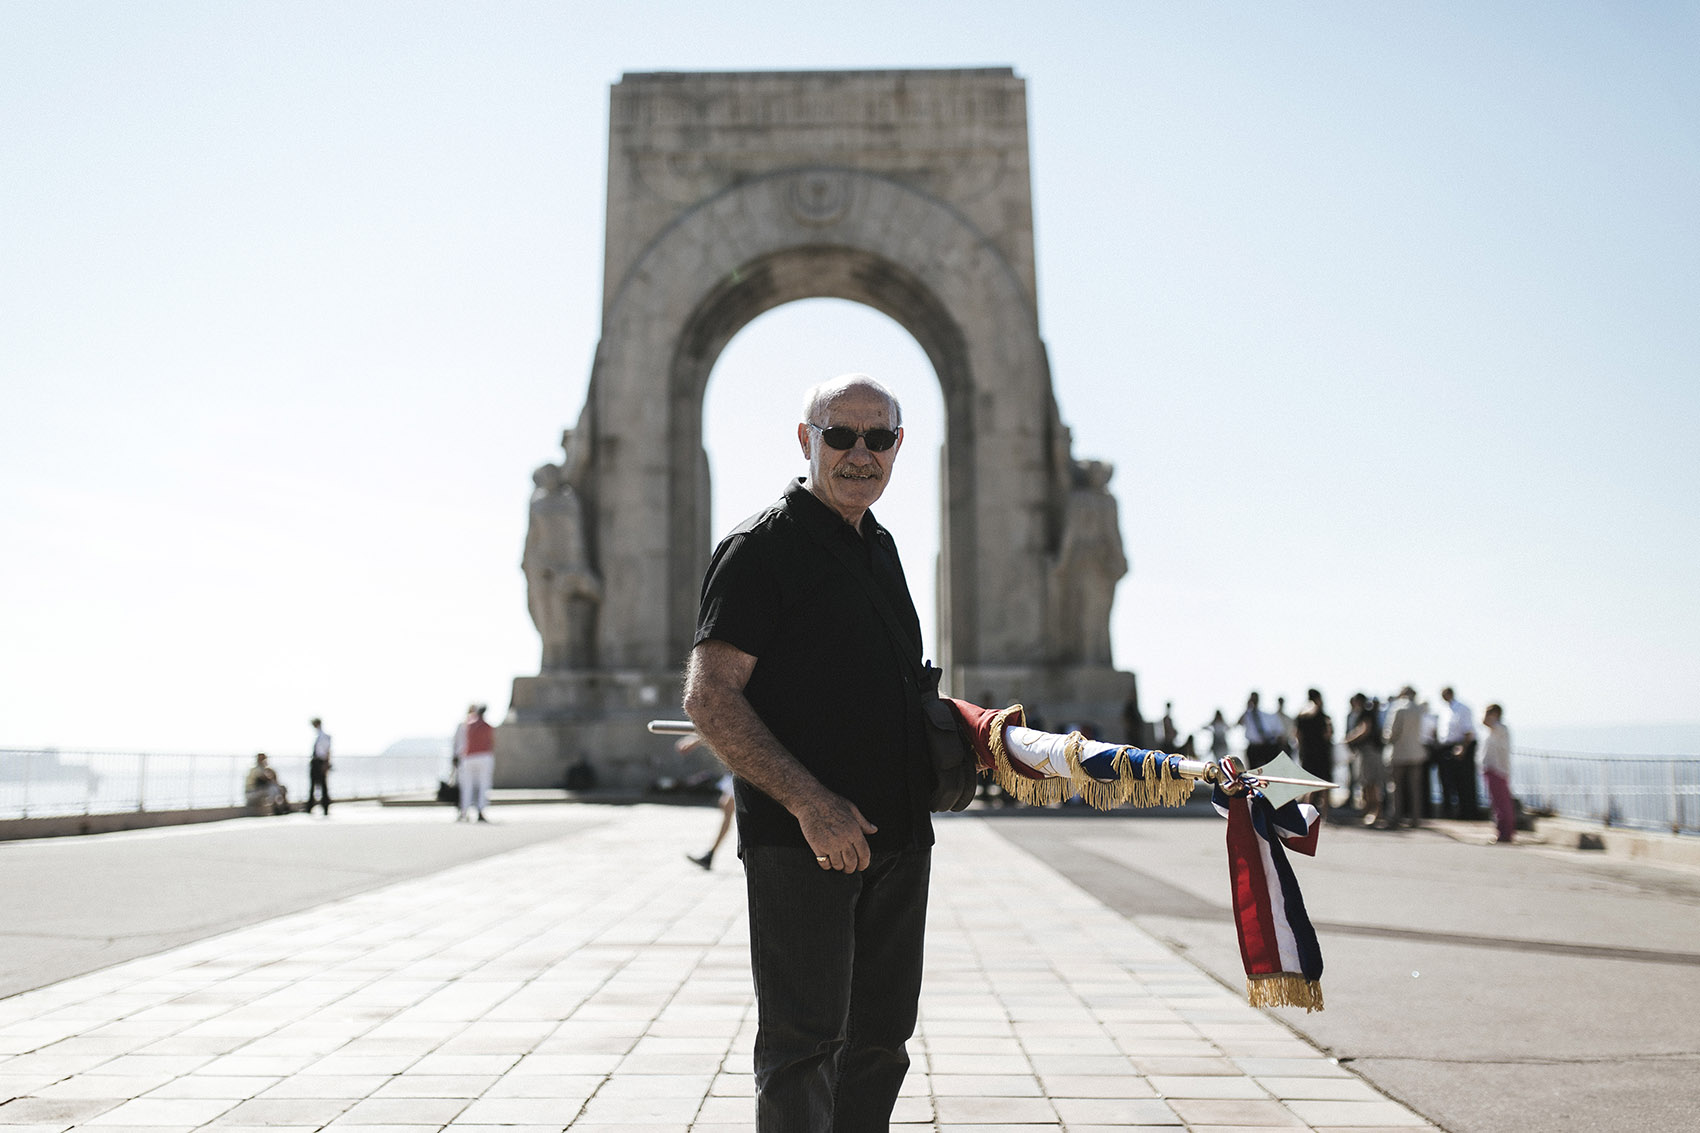 The pensioner Francis is standing in front of Porte d'Orient, holding a rolled-up flag and looking into the camera.